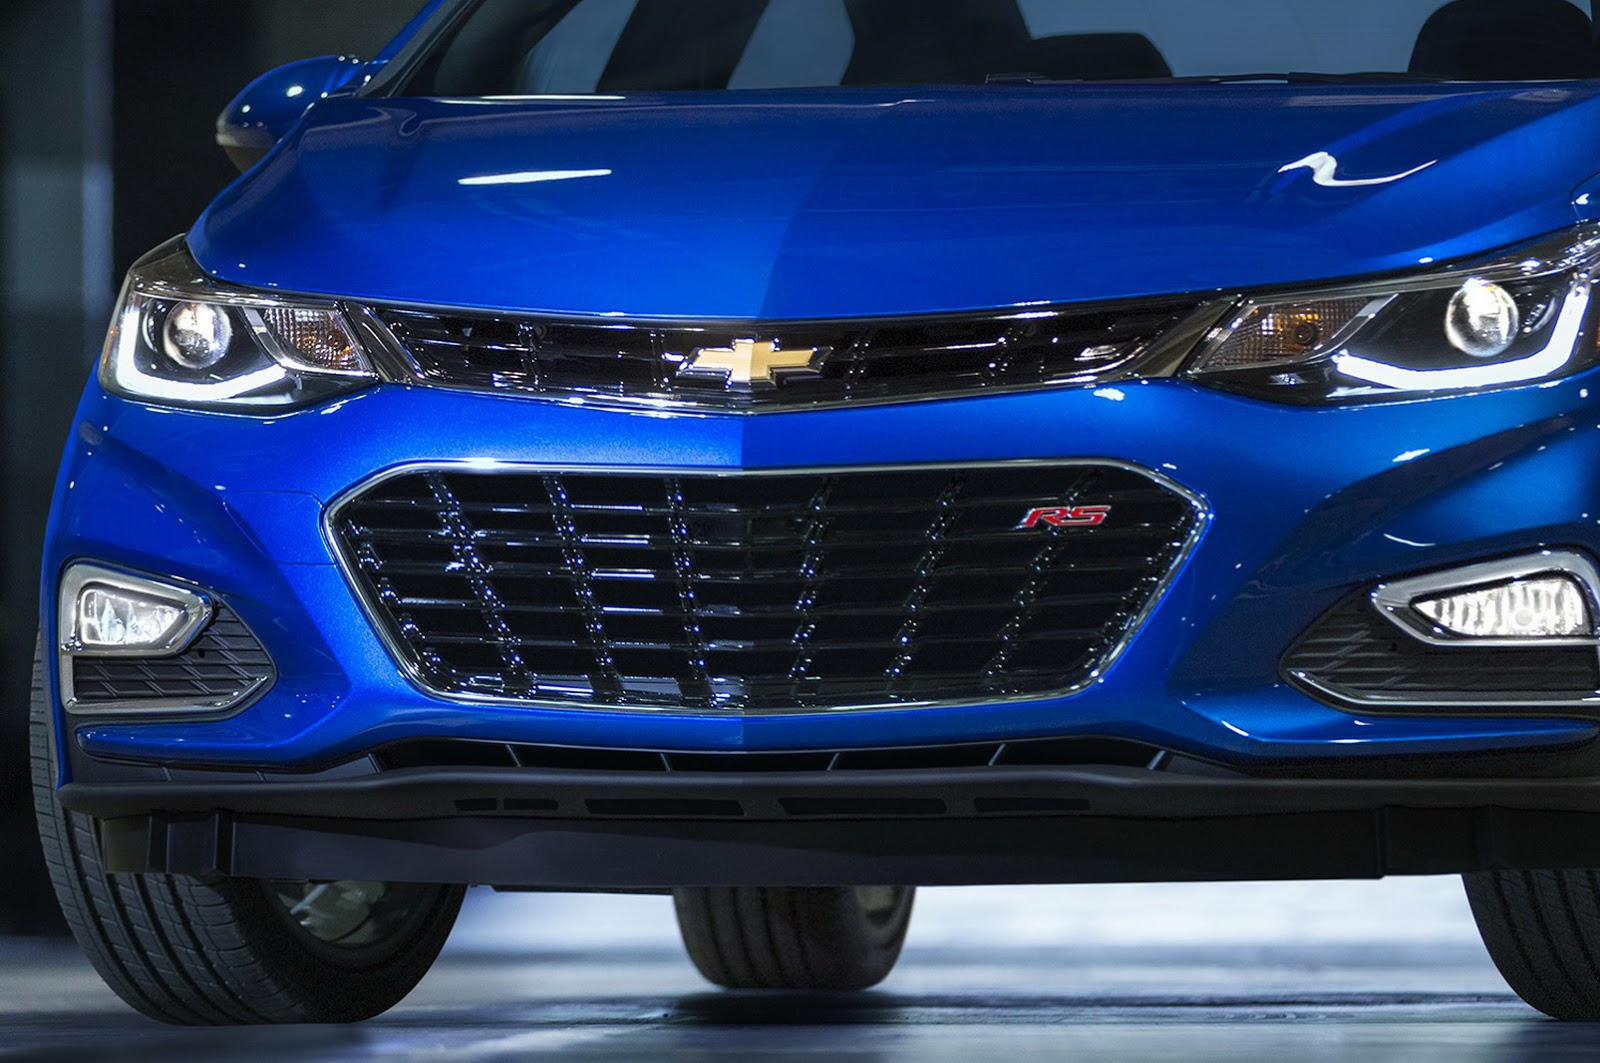 2016 Chevrolet Cruze grille official image